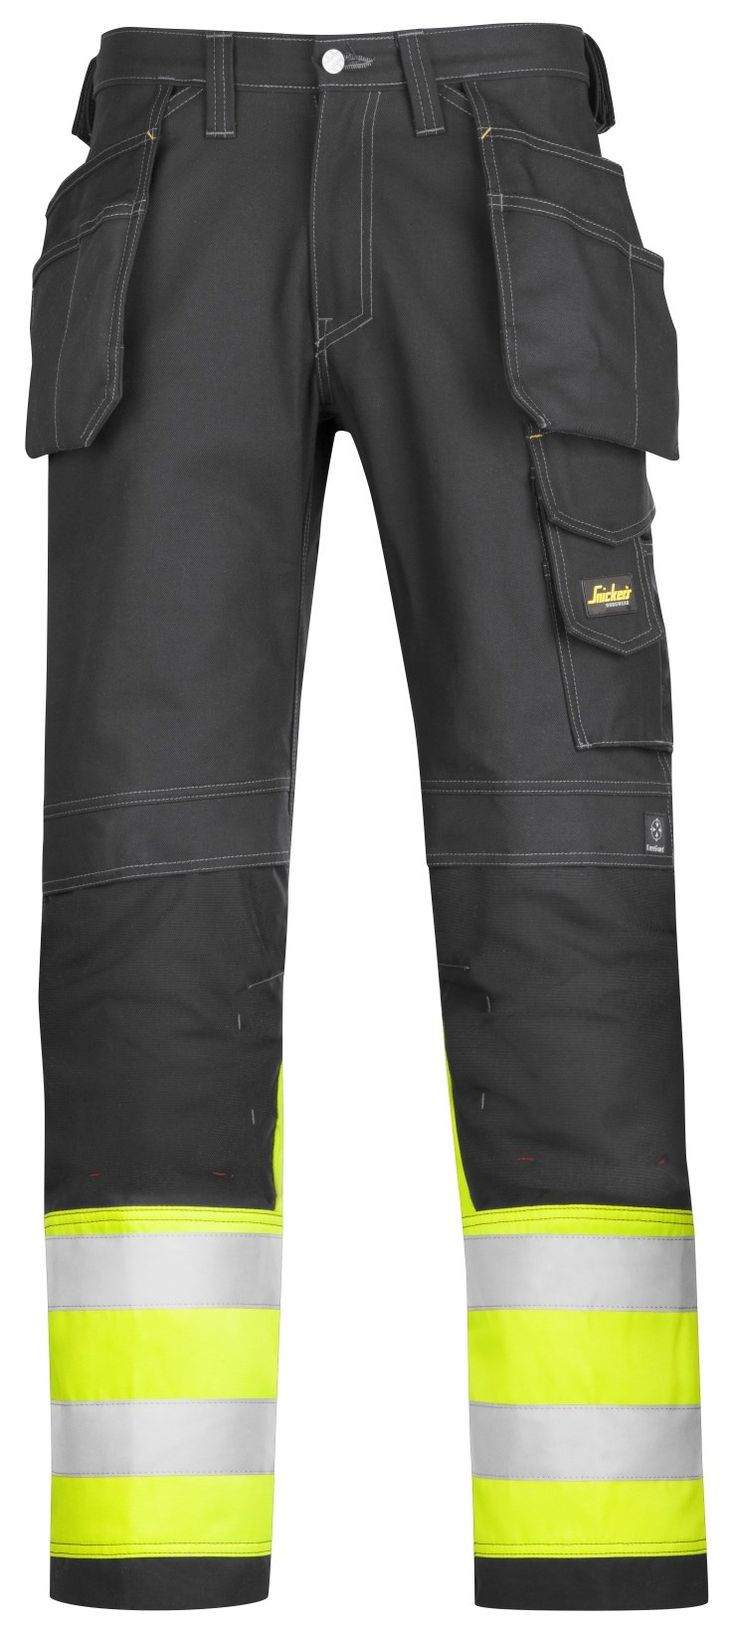 For all those jobs you need to be visible, but you don't need the whole nine yards, this pair of high visibility trousers (class 1) offers all the functionality you need with extra visibility at the legs. - Snickers Workwear Artnr. 3235